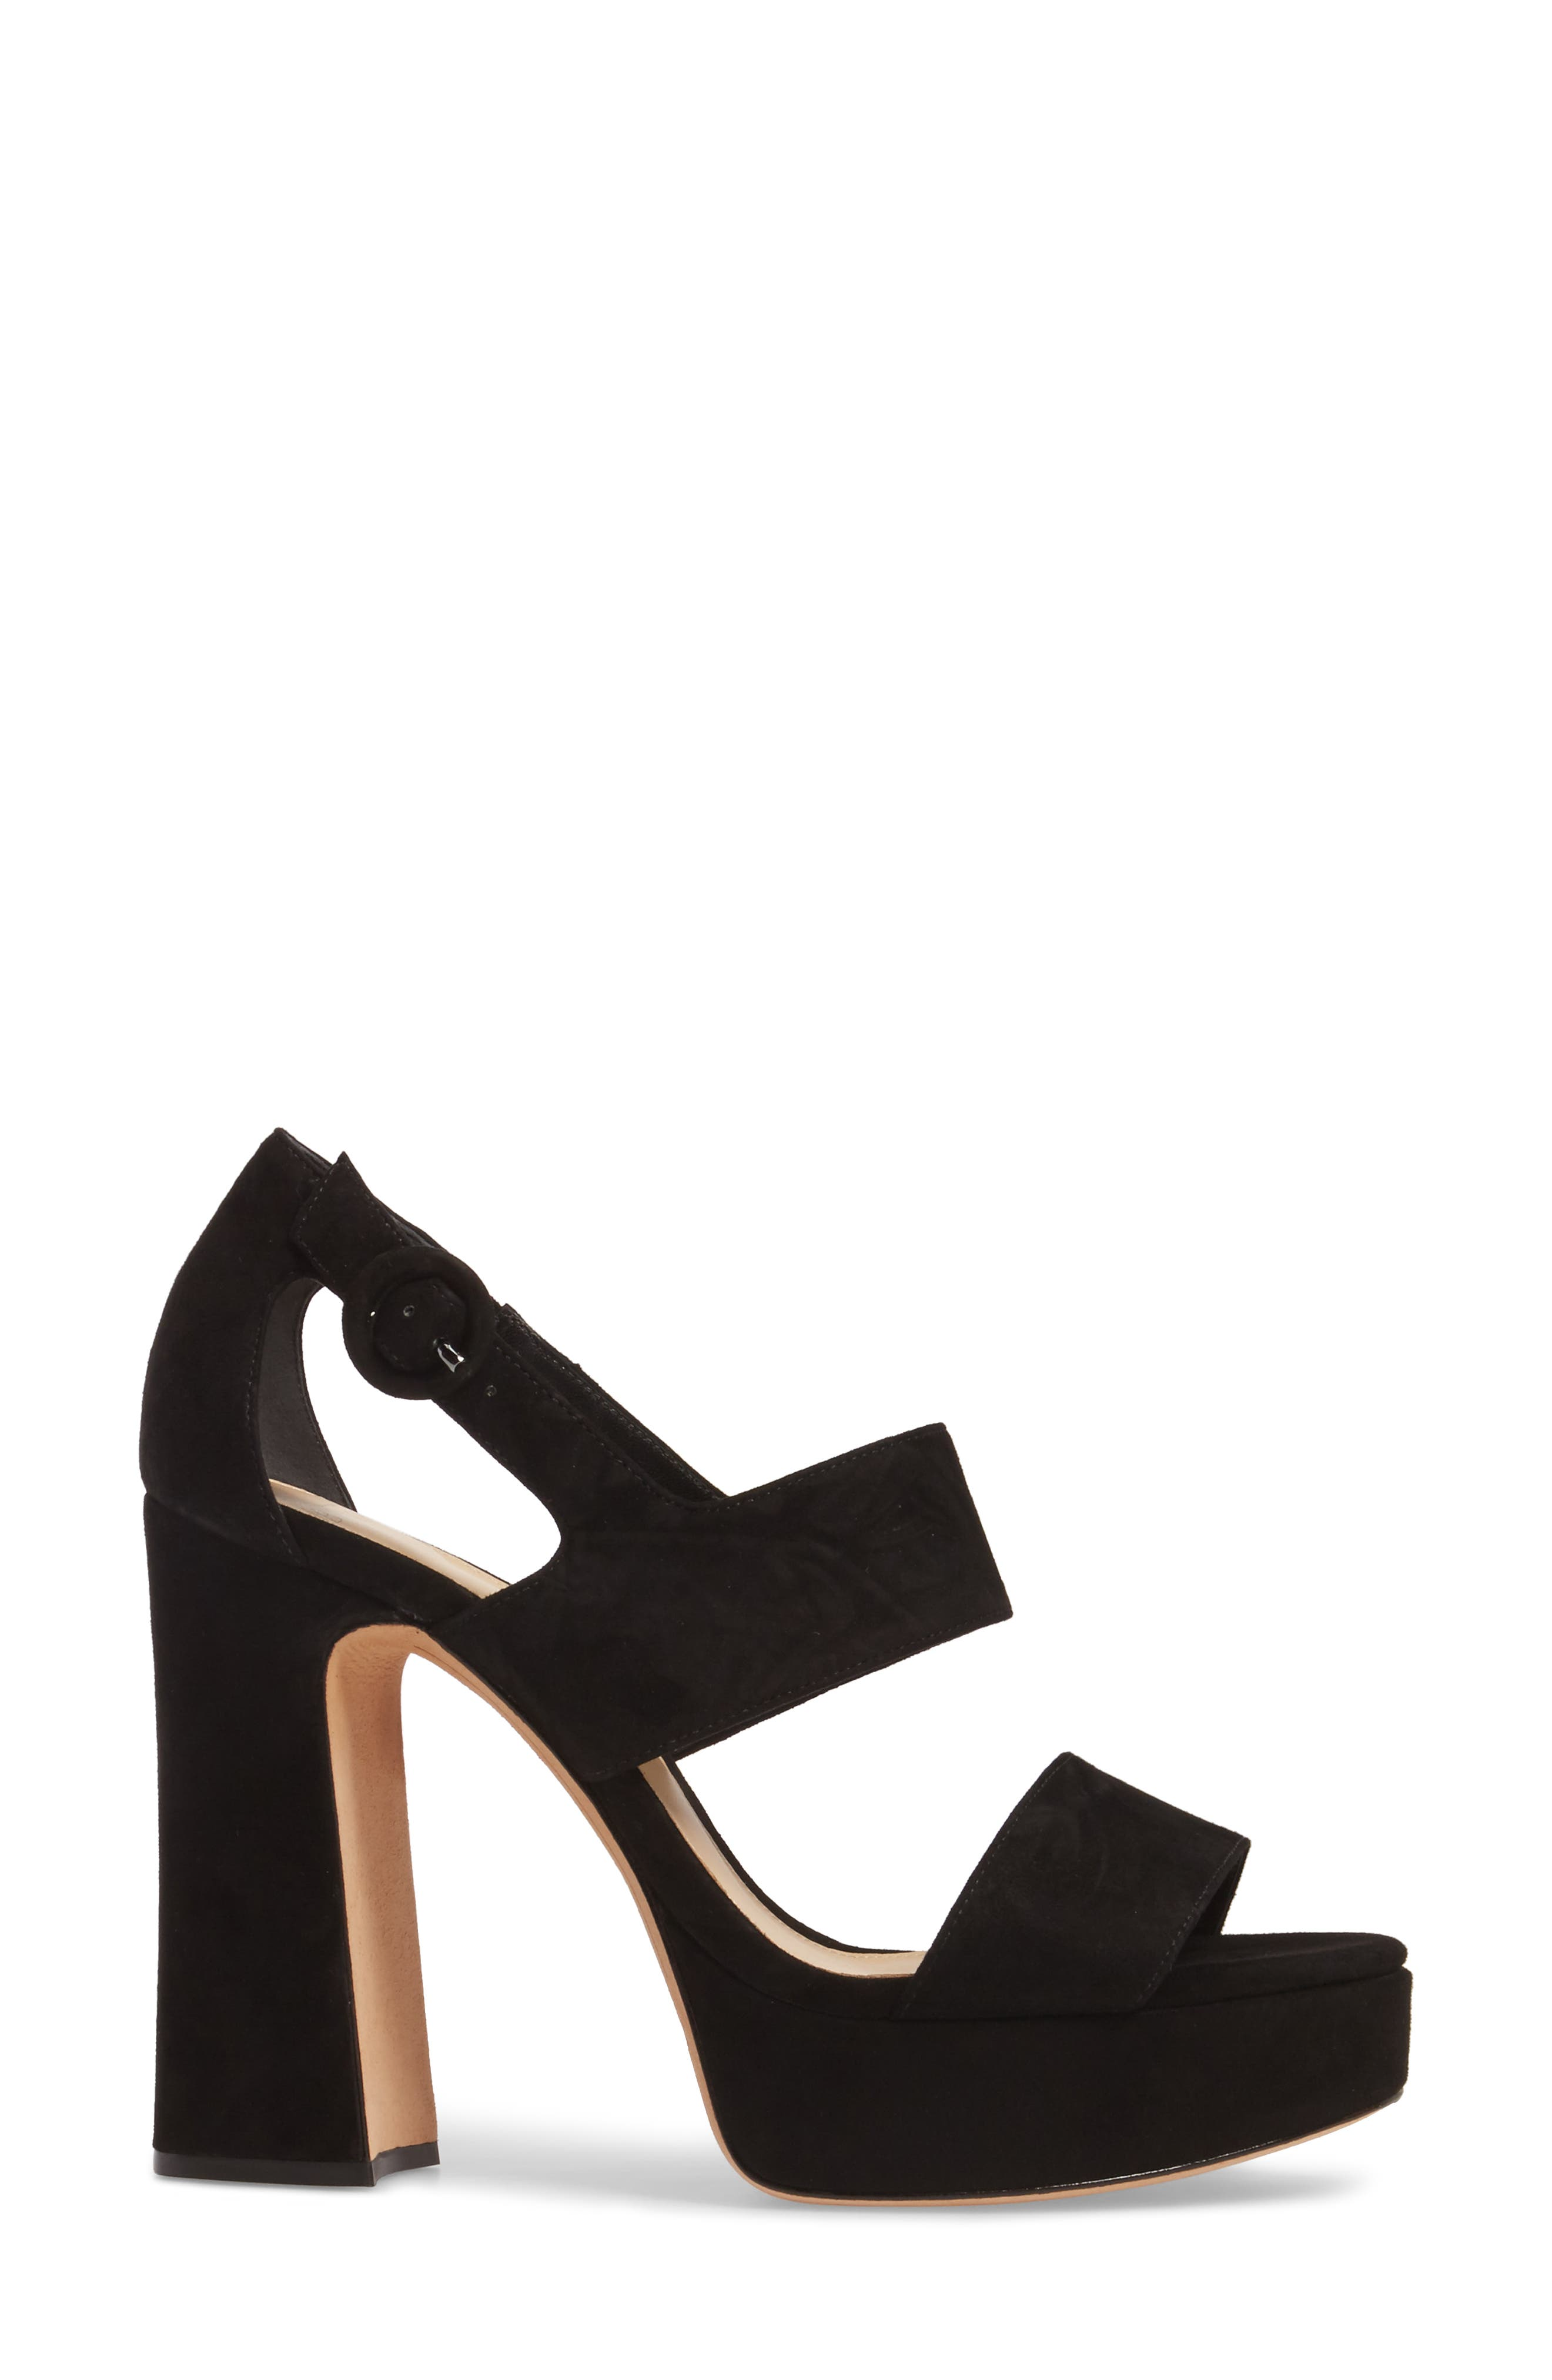 Elouise Platform Sandal,                             Alternate thumbnail 3, color,                             001